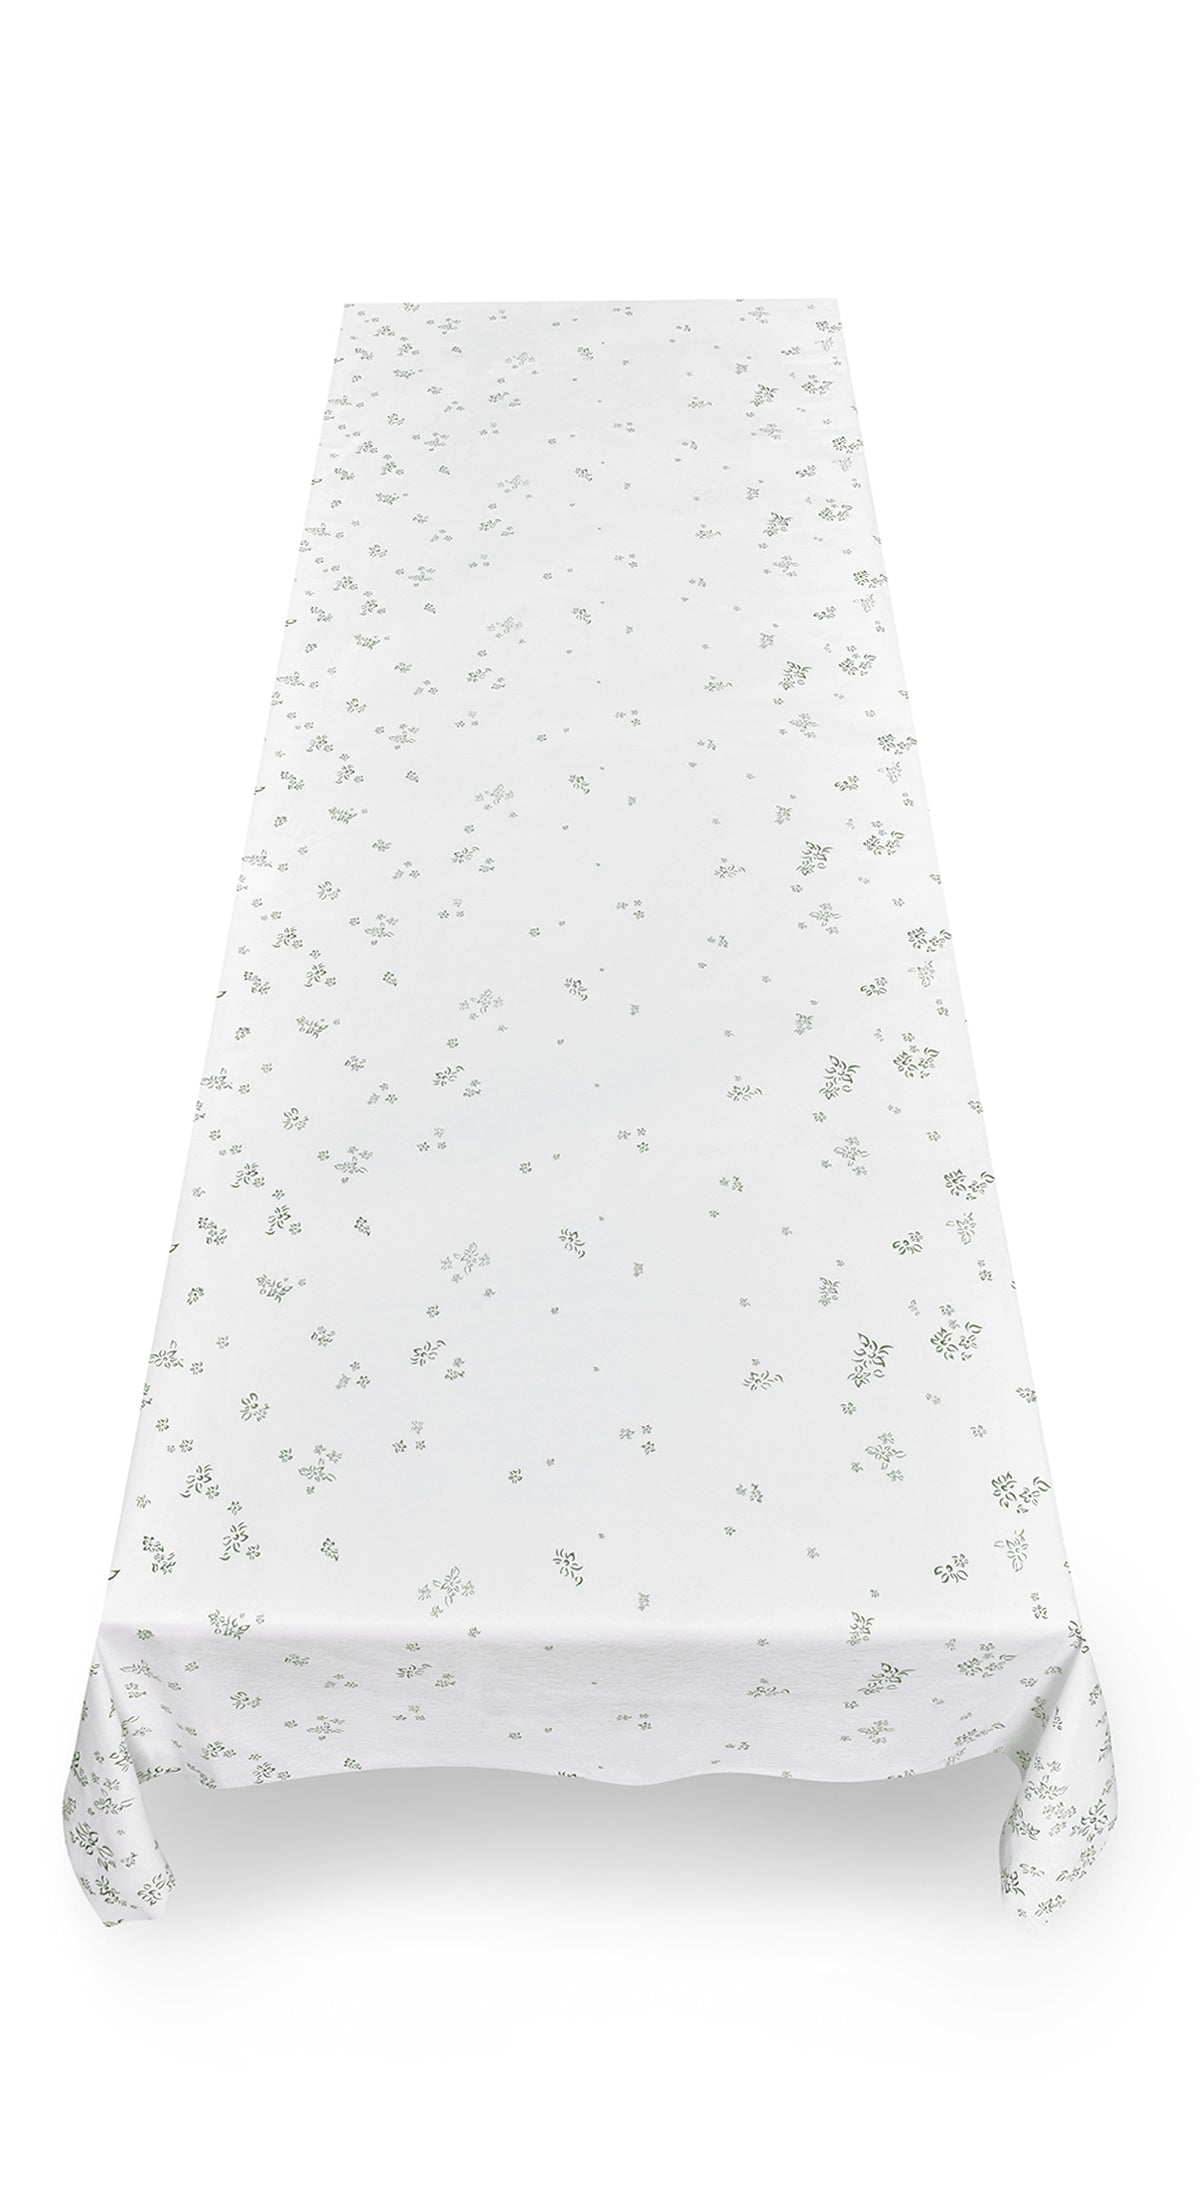 S&B Falling Flower Paper Tablecloth in Avocado Green